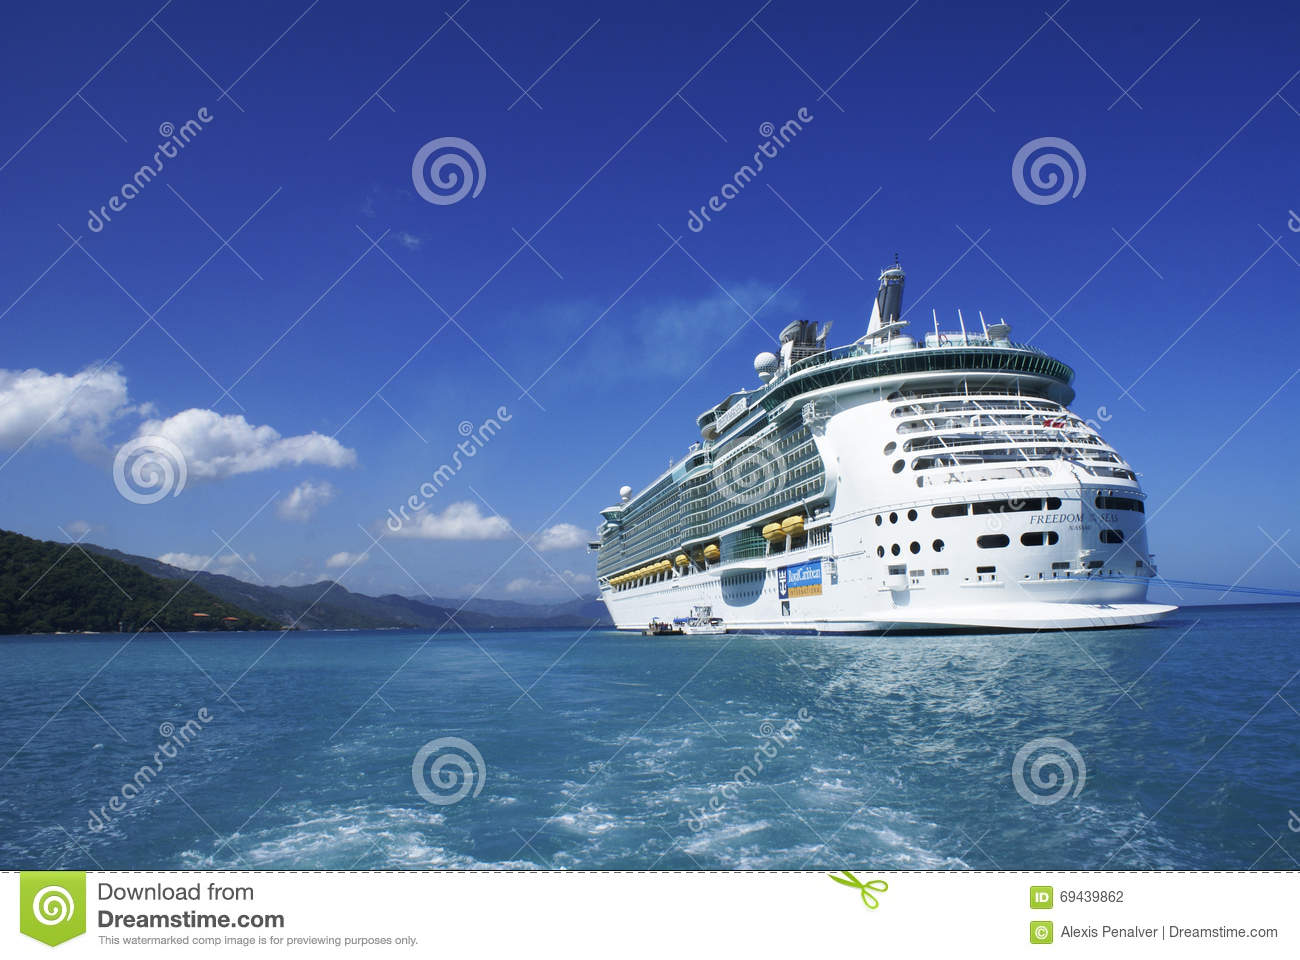 Luxecruise in Labadee